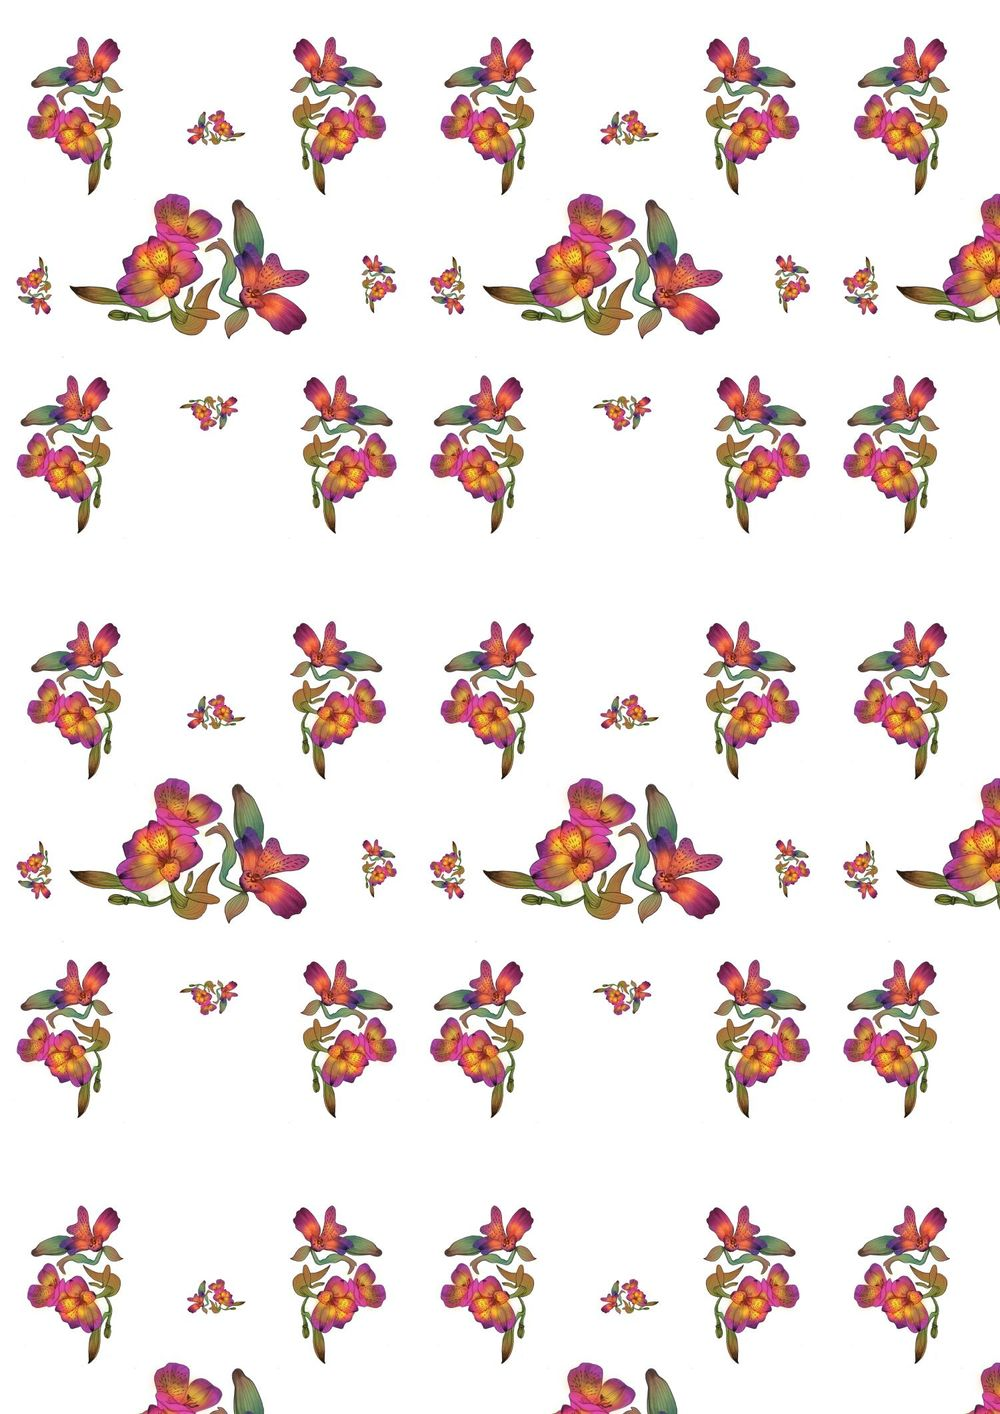 Floral wallpaper - image 1 - student project